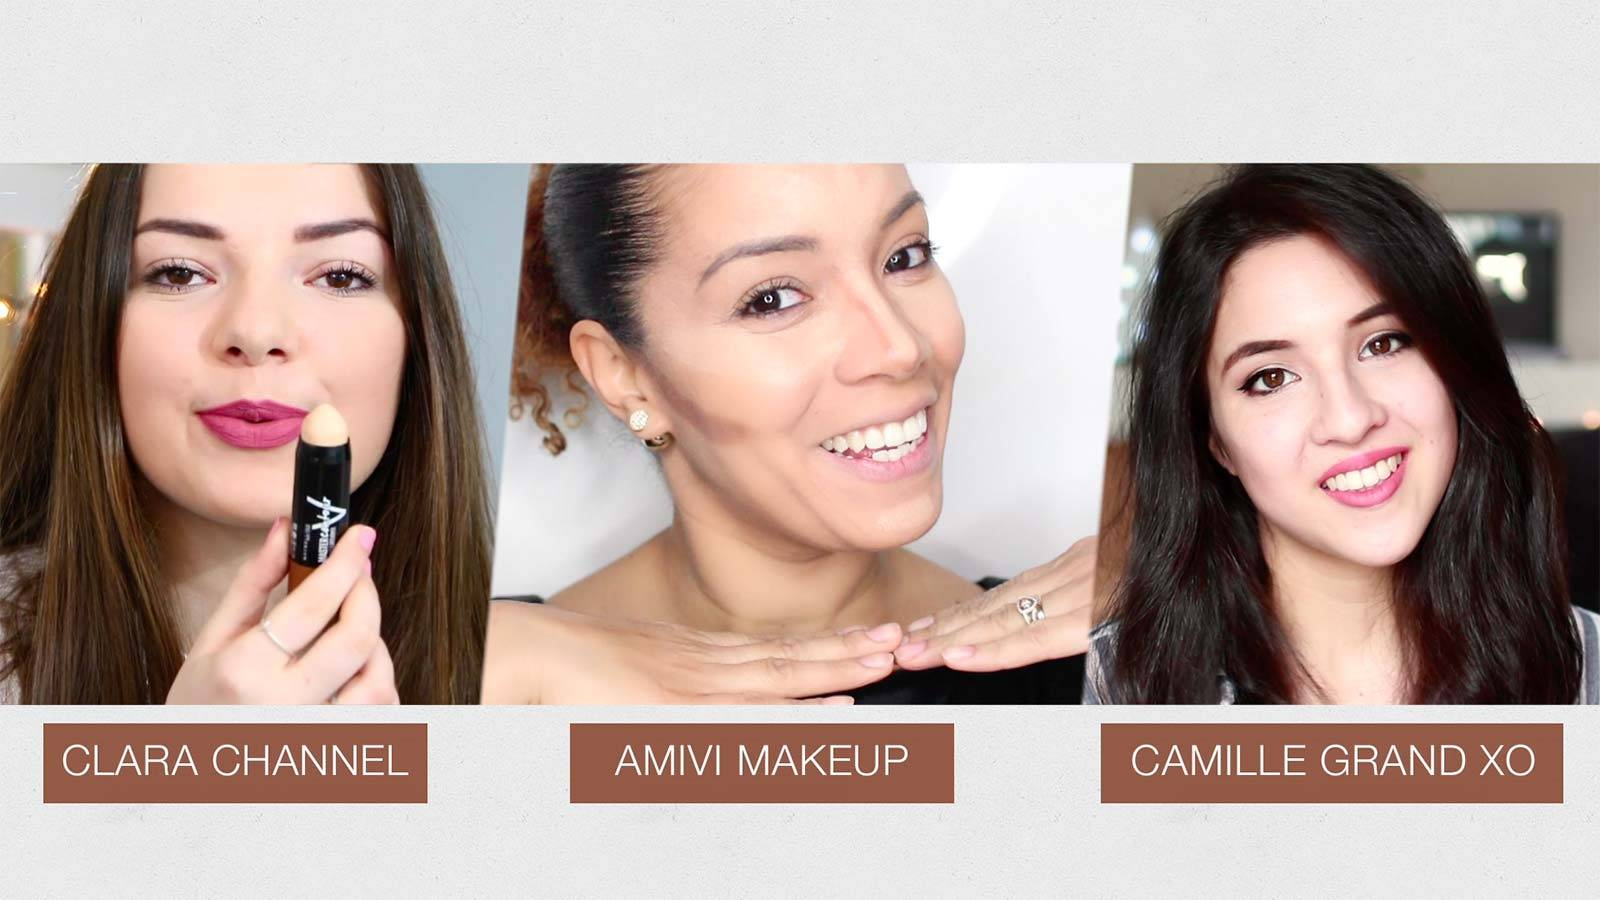 video-mashup-youtubeuses-contouring-facile-16x9